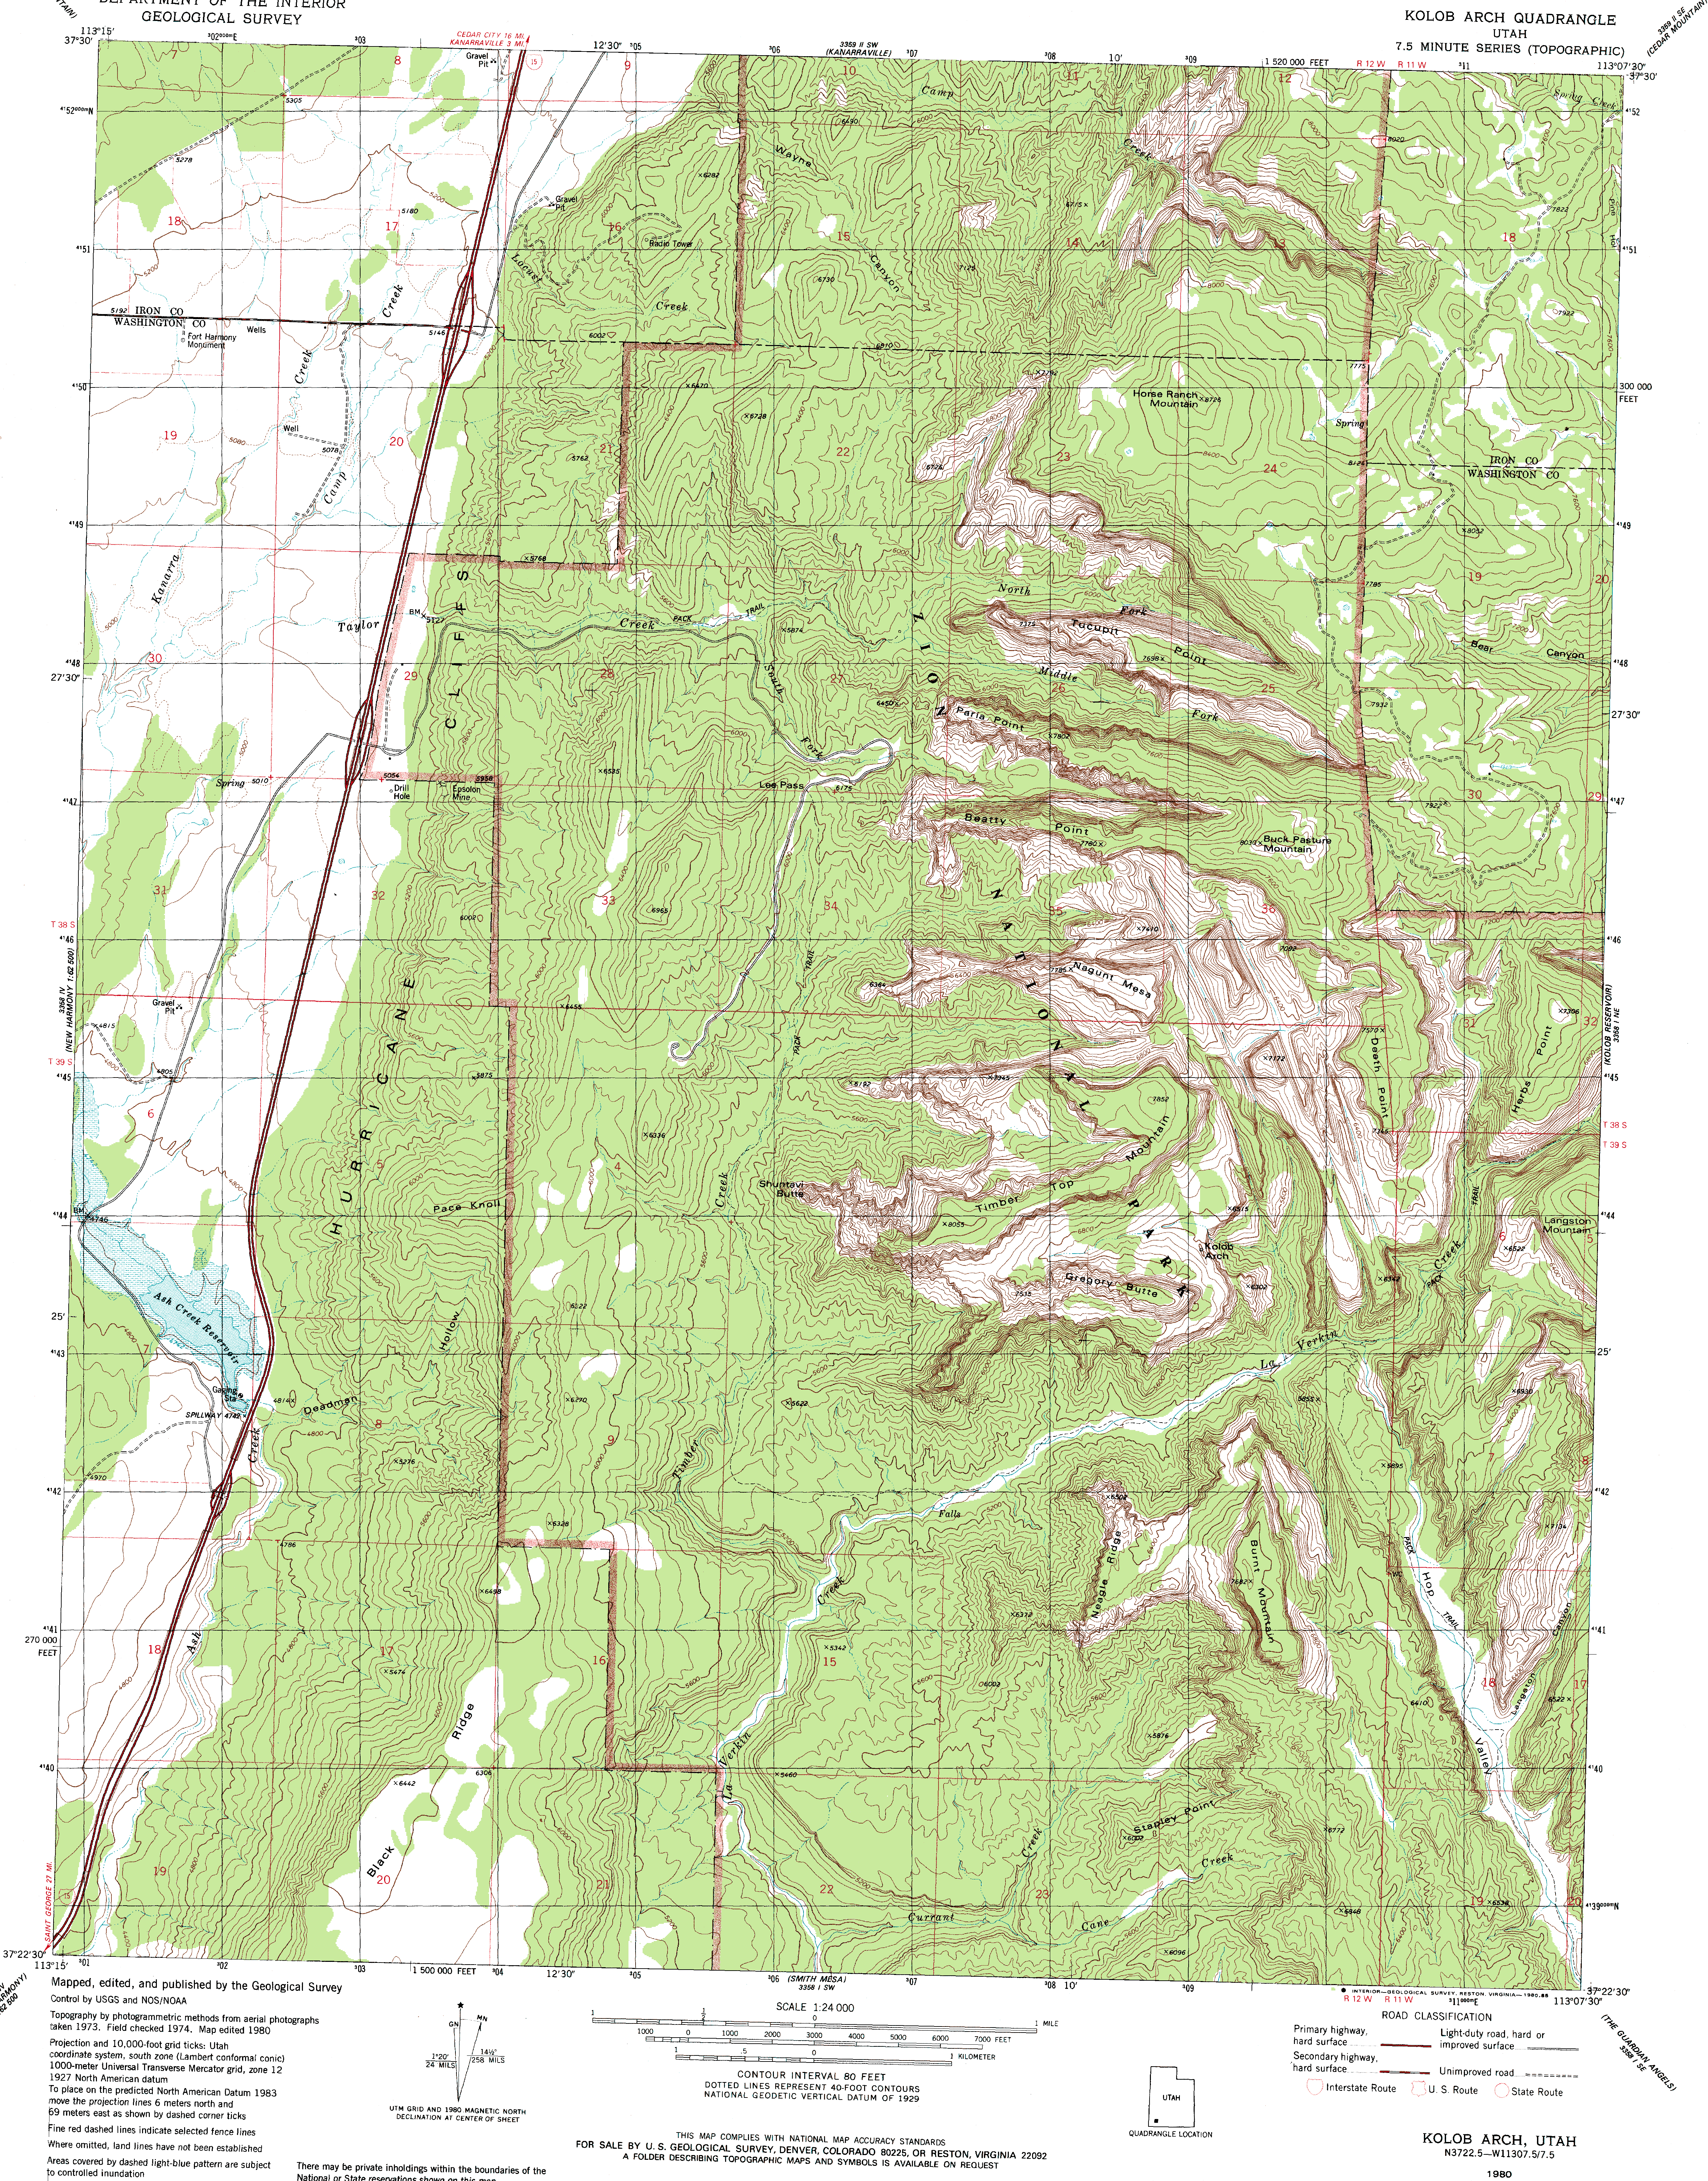 Map Trails Ilrated 214 Zion Makes A Good Overview Map But It S Scale Of 1 38 000 Makes The Usgs